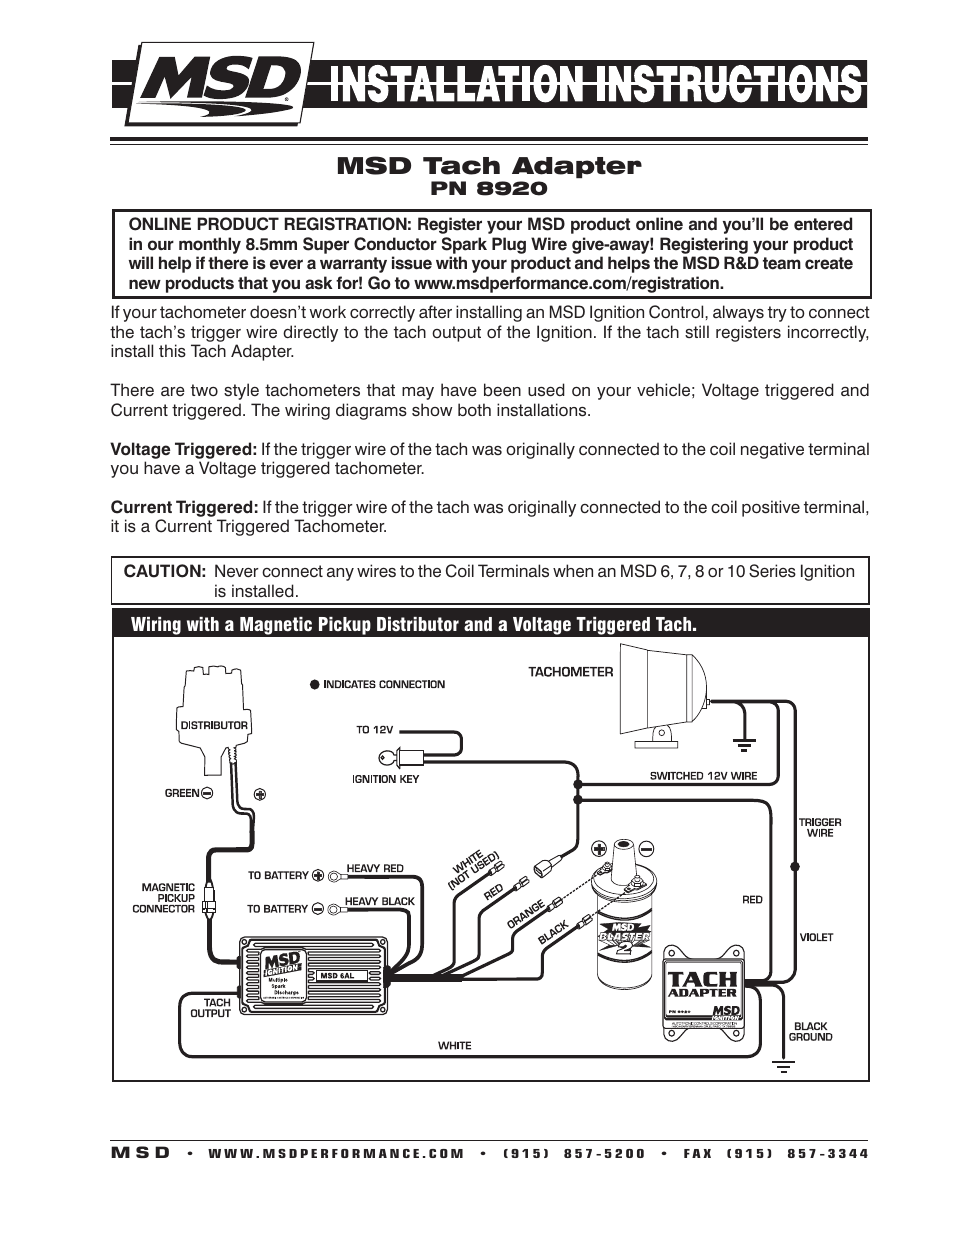 msd 8920 tach adapter magnetic trigger installation page1 msd 8920 tach adapter, magnetic trigger installation user manual msd 8920 wiring diagram at cos-gaming.co